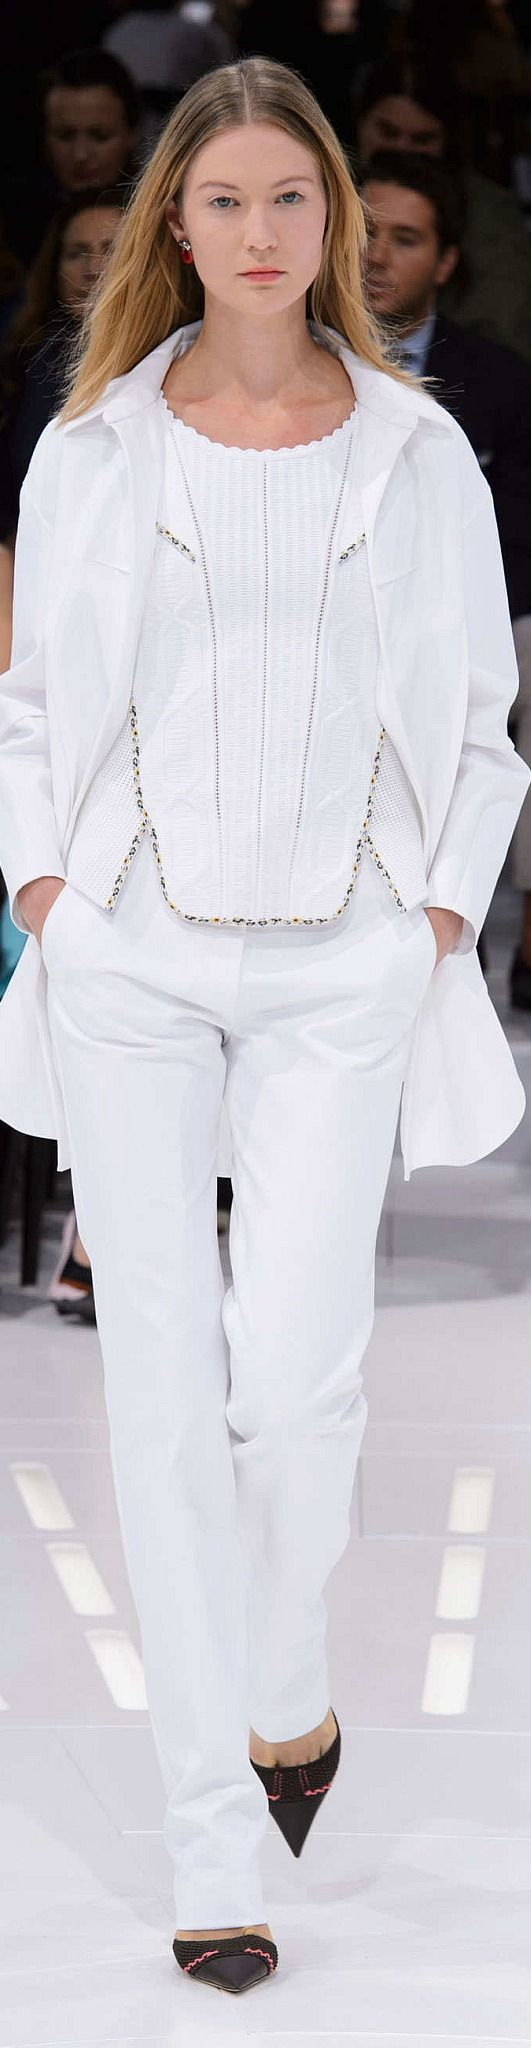 Christian Dior Collection Spring 2015